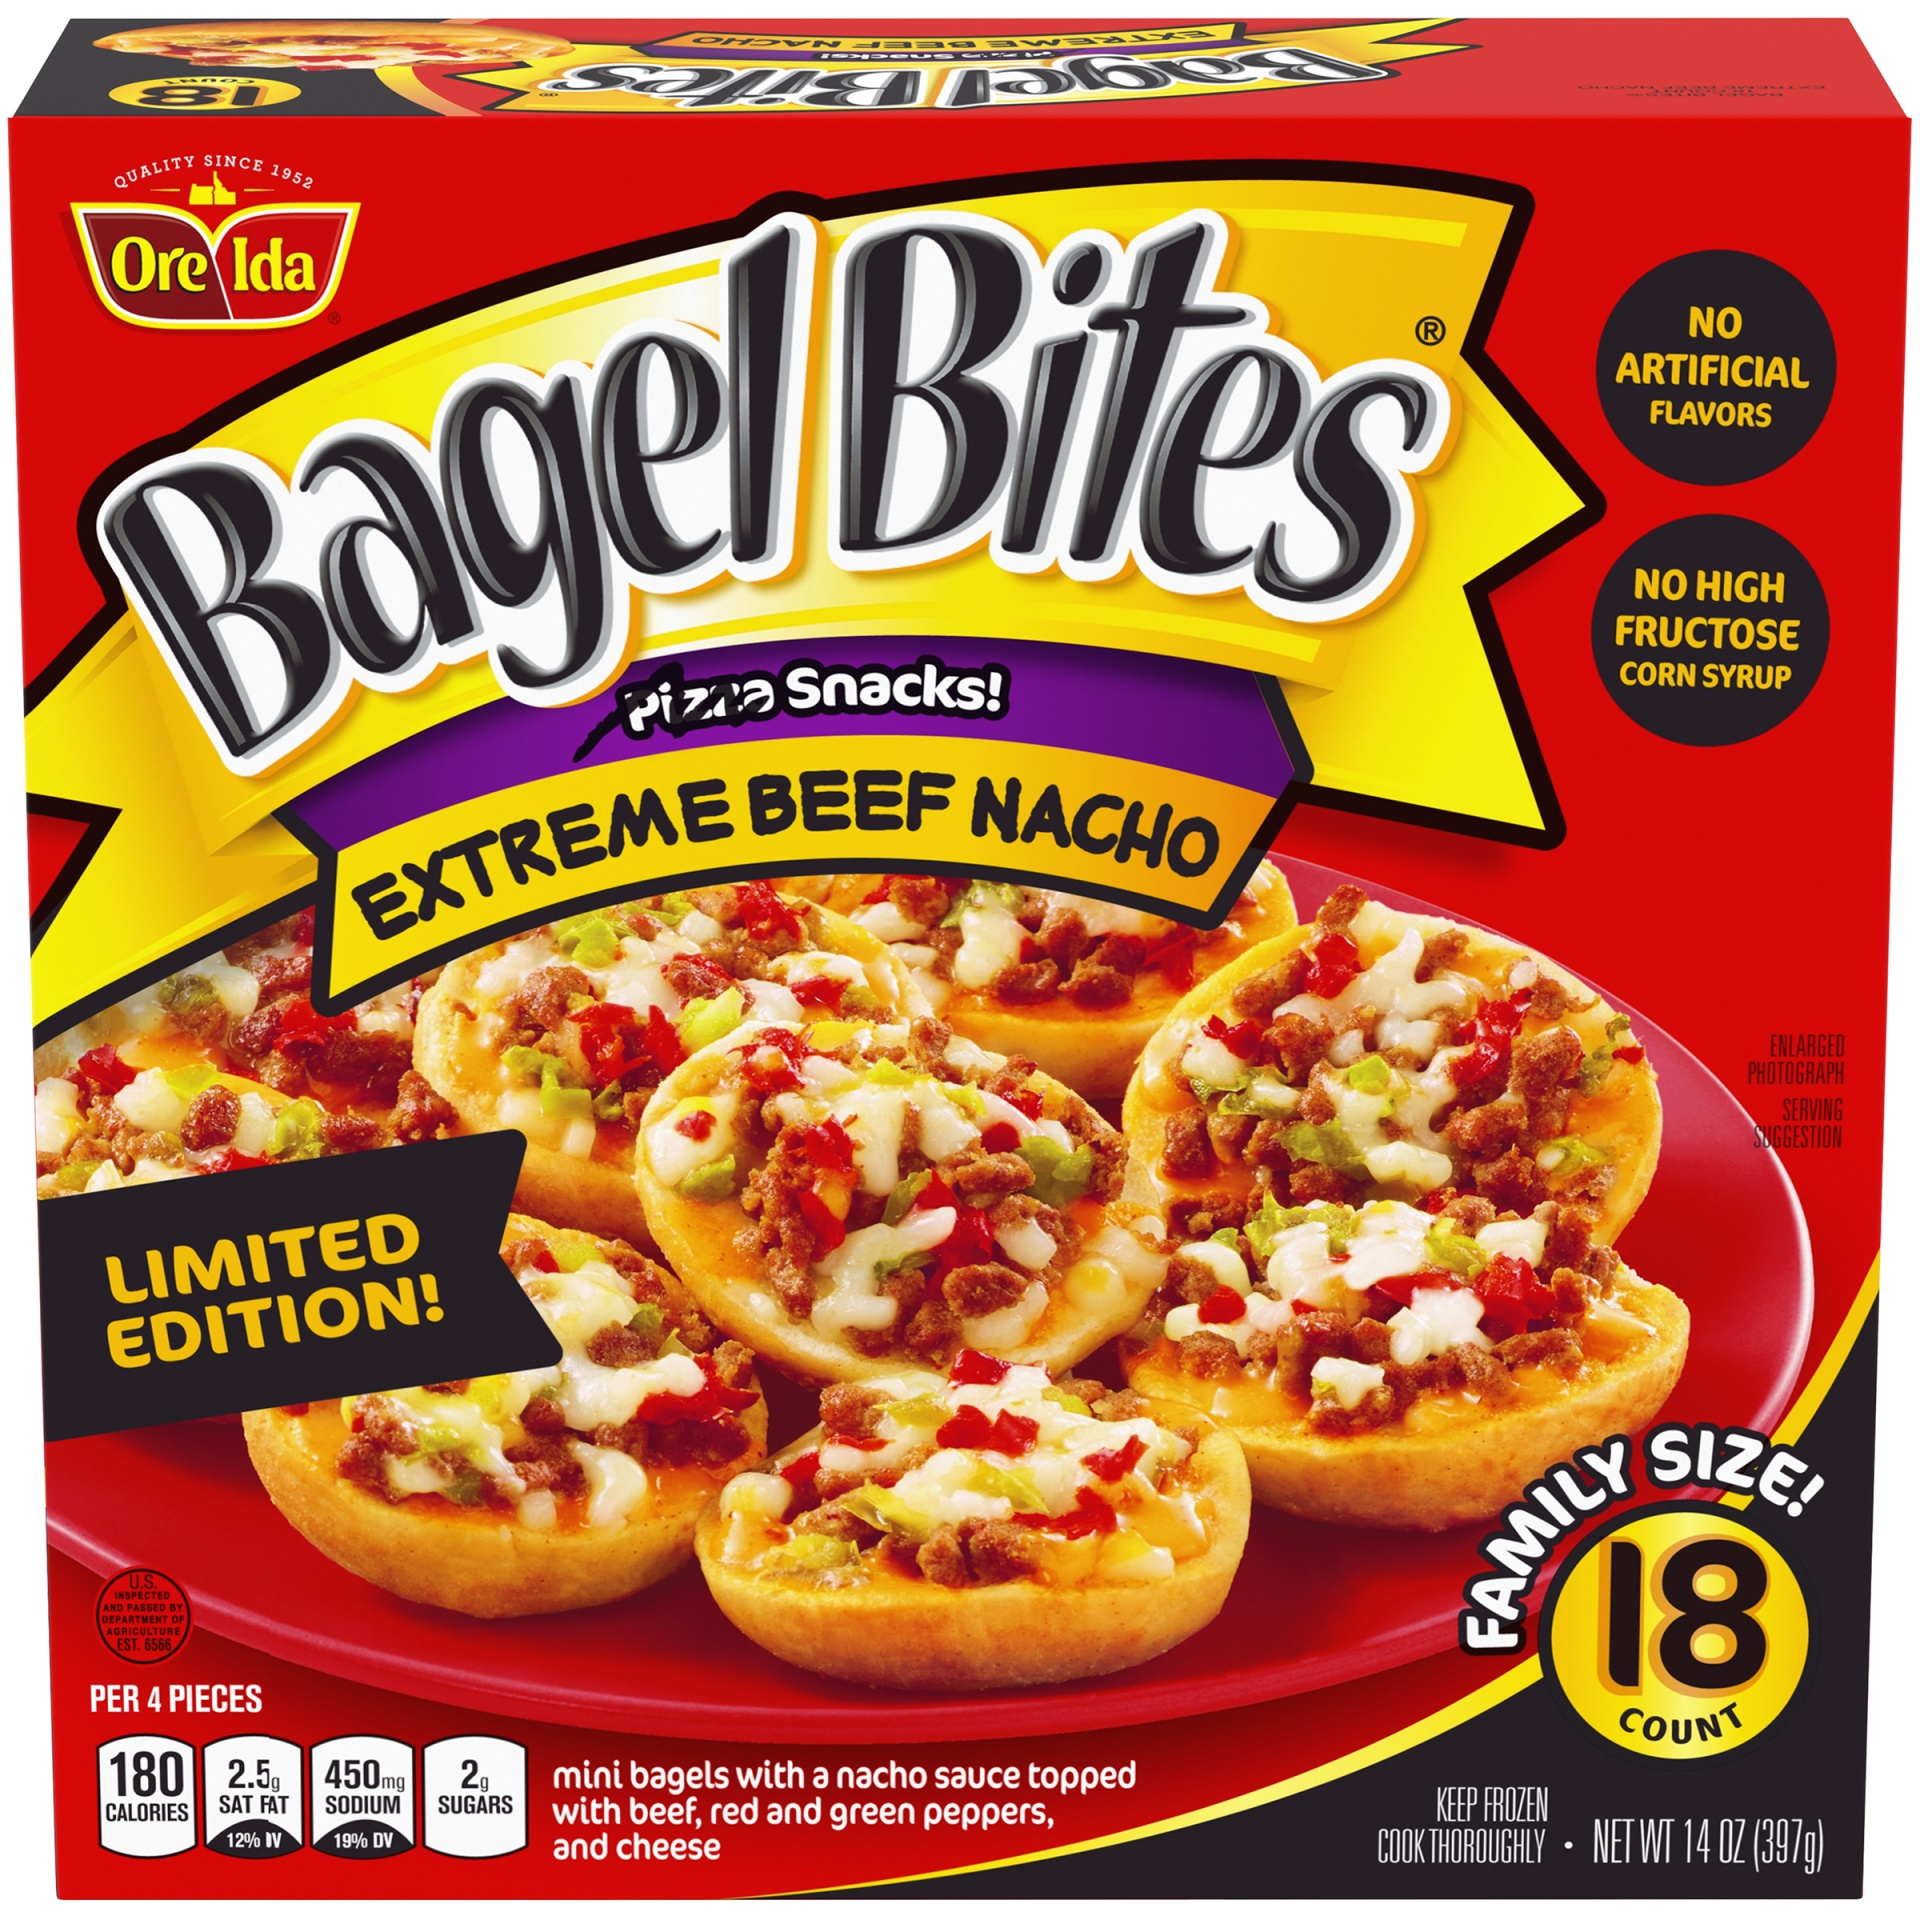 slide 1 of 6, Bagel Bites Frozen Pizza & Appetizers Extreme Beef Nacho,